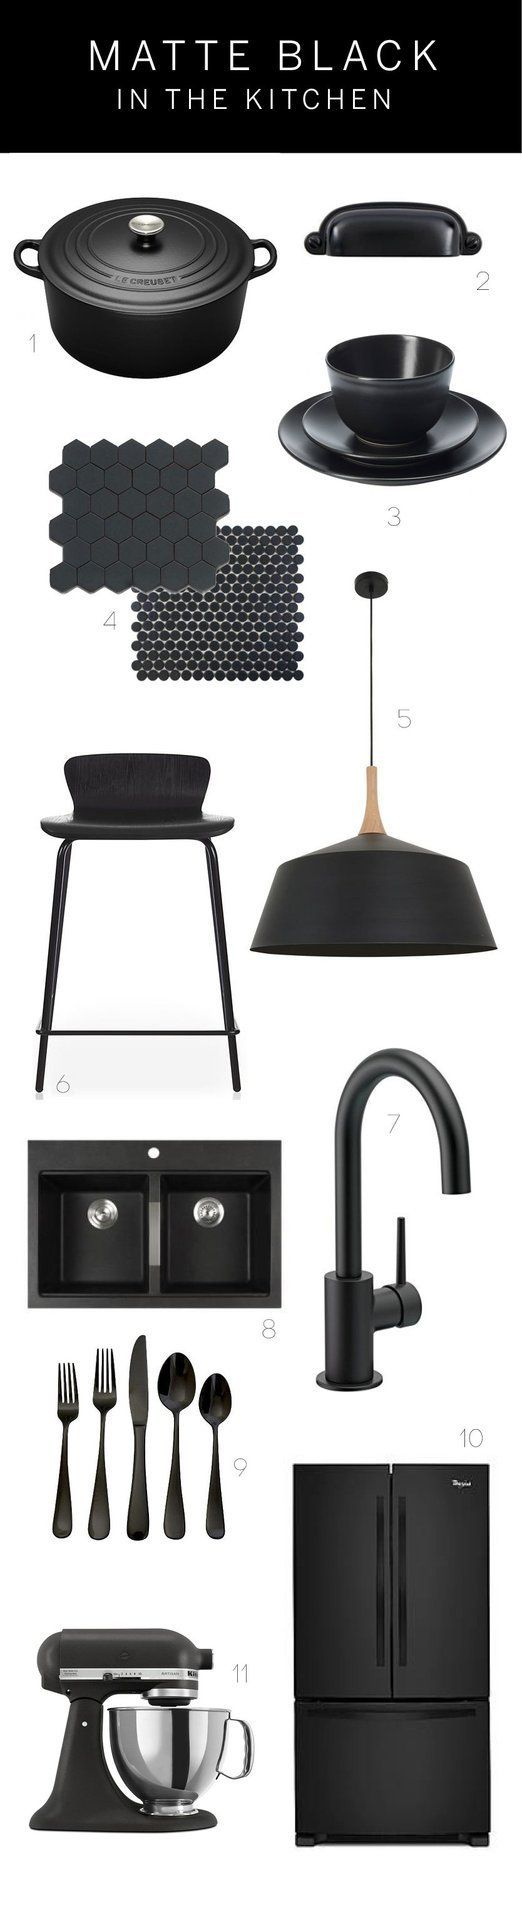 #KimKatsenes.com #NewLenoxRealtor Get In My Kitchen: On Trend Matte Black Kitchen Goods